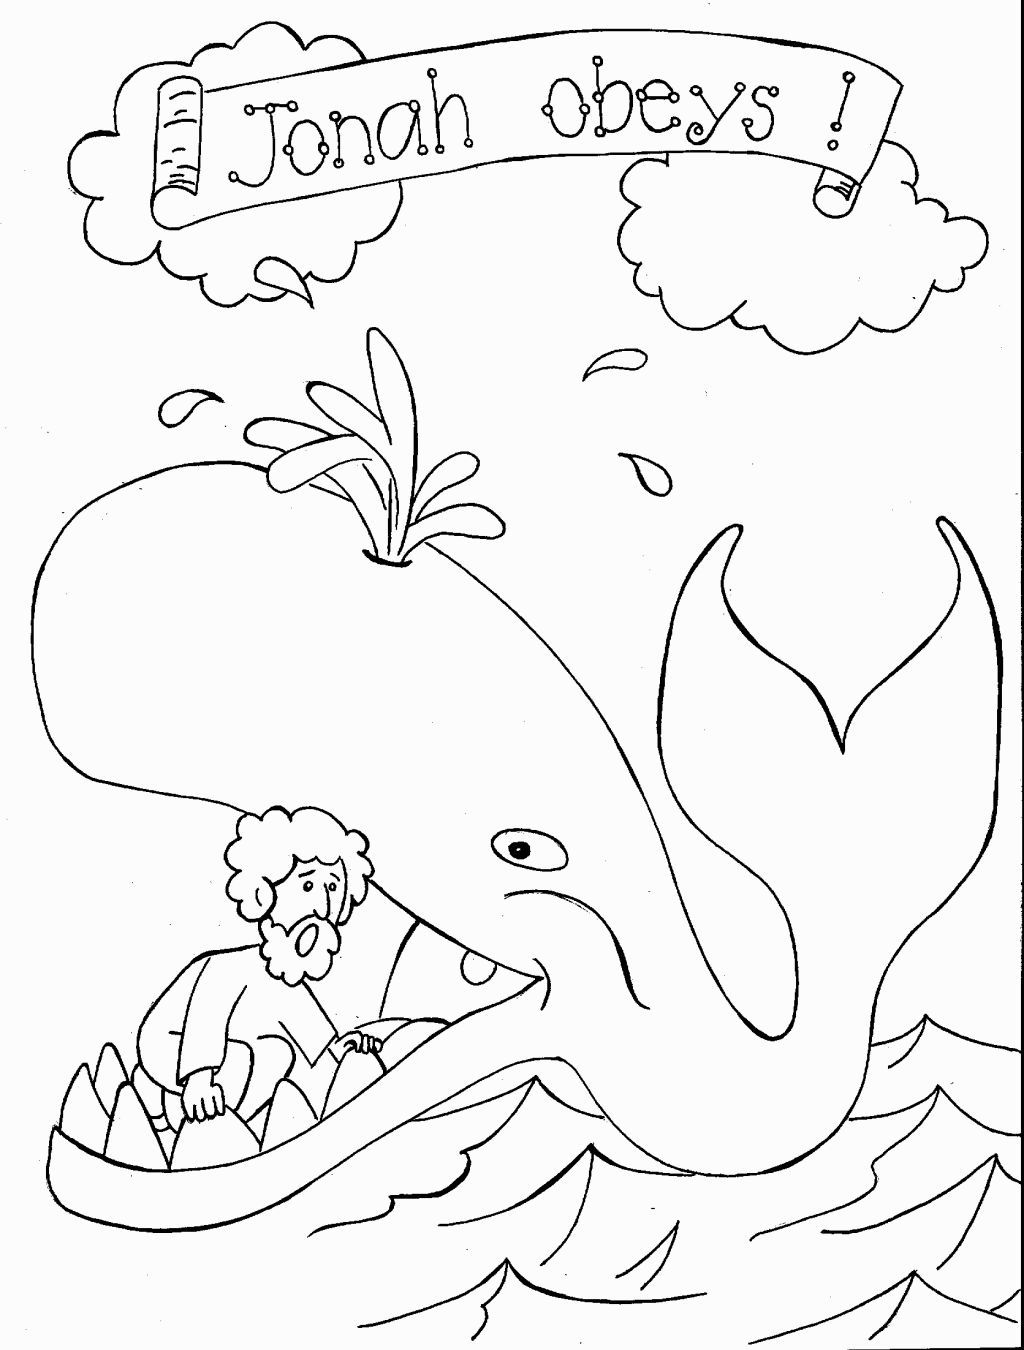 Jonah Coloring Pages Sunday School Coloring Pages Bible Coloring Pages Whale Coloring Pages